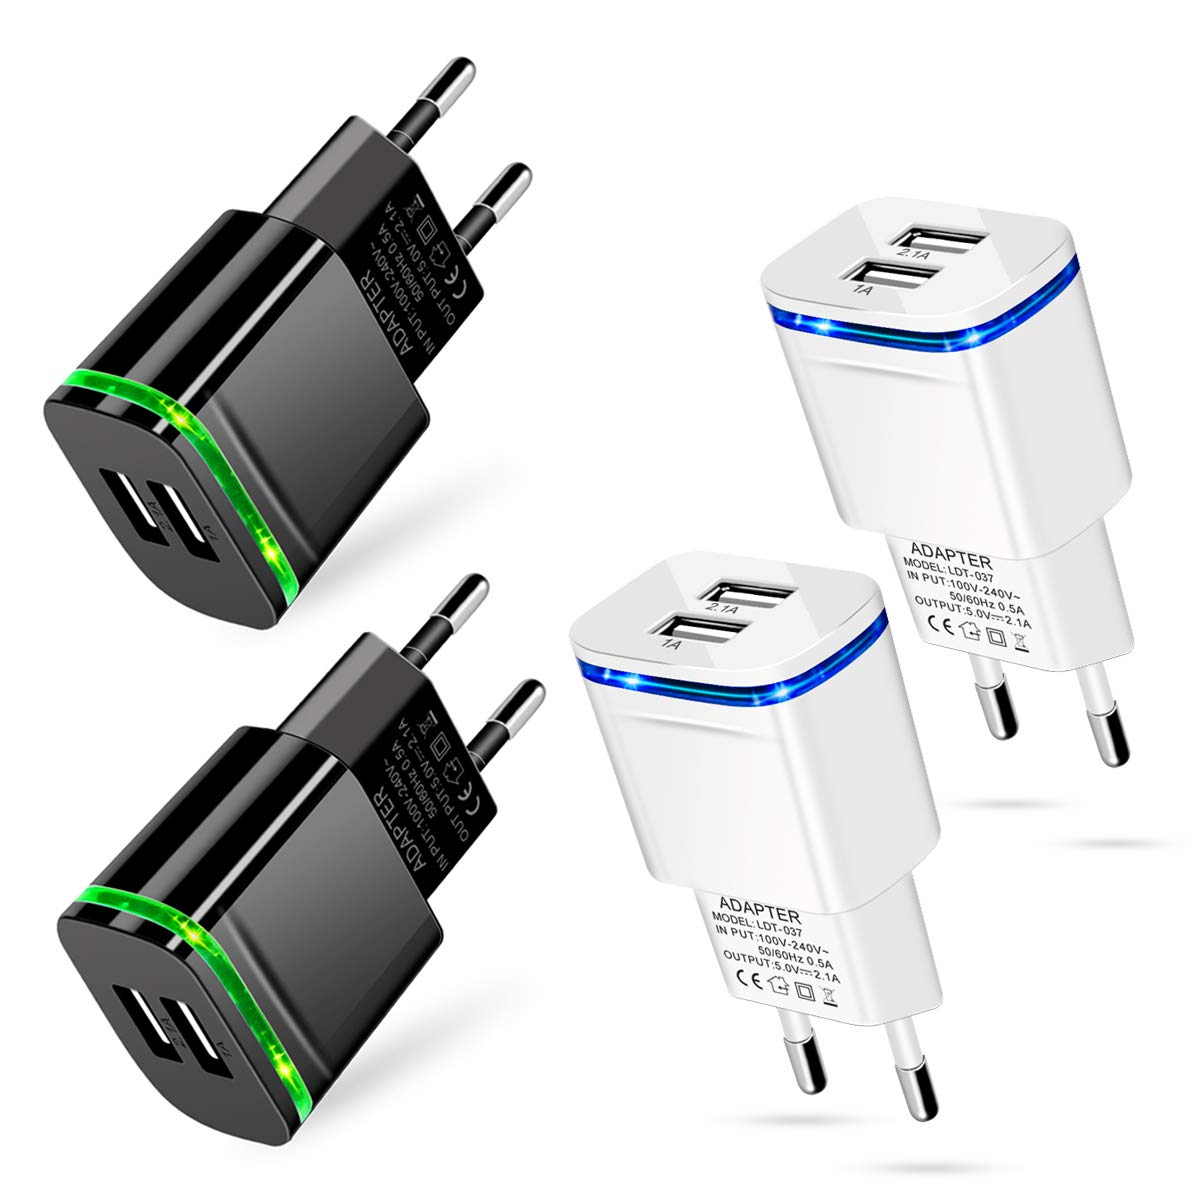 European Plug Adapter, 4-Pack 2.1A/5V Dual Europe USB Wall Charger Power Travel Adapter for iPhone X 8 7 6 6S Plus, Samsung, iPad, Moto, LG, HTC, More Cell Phone